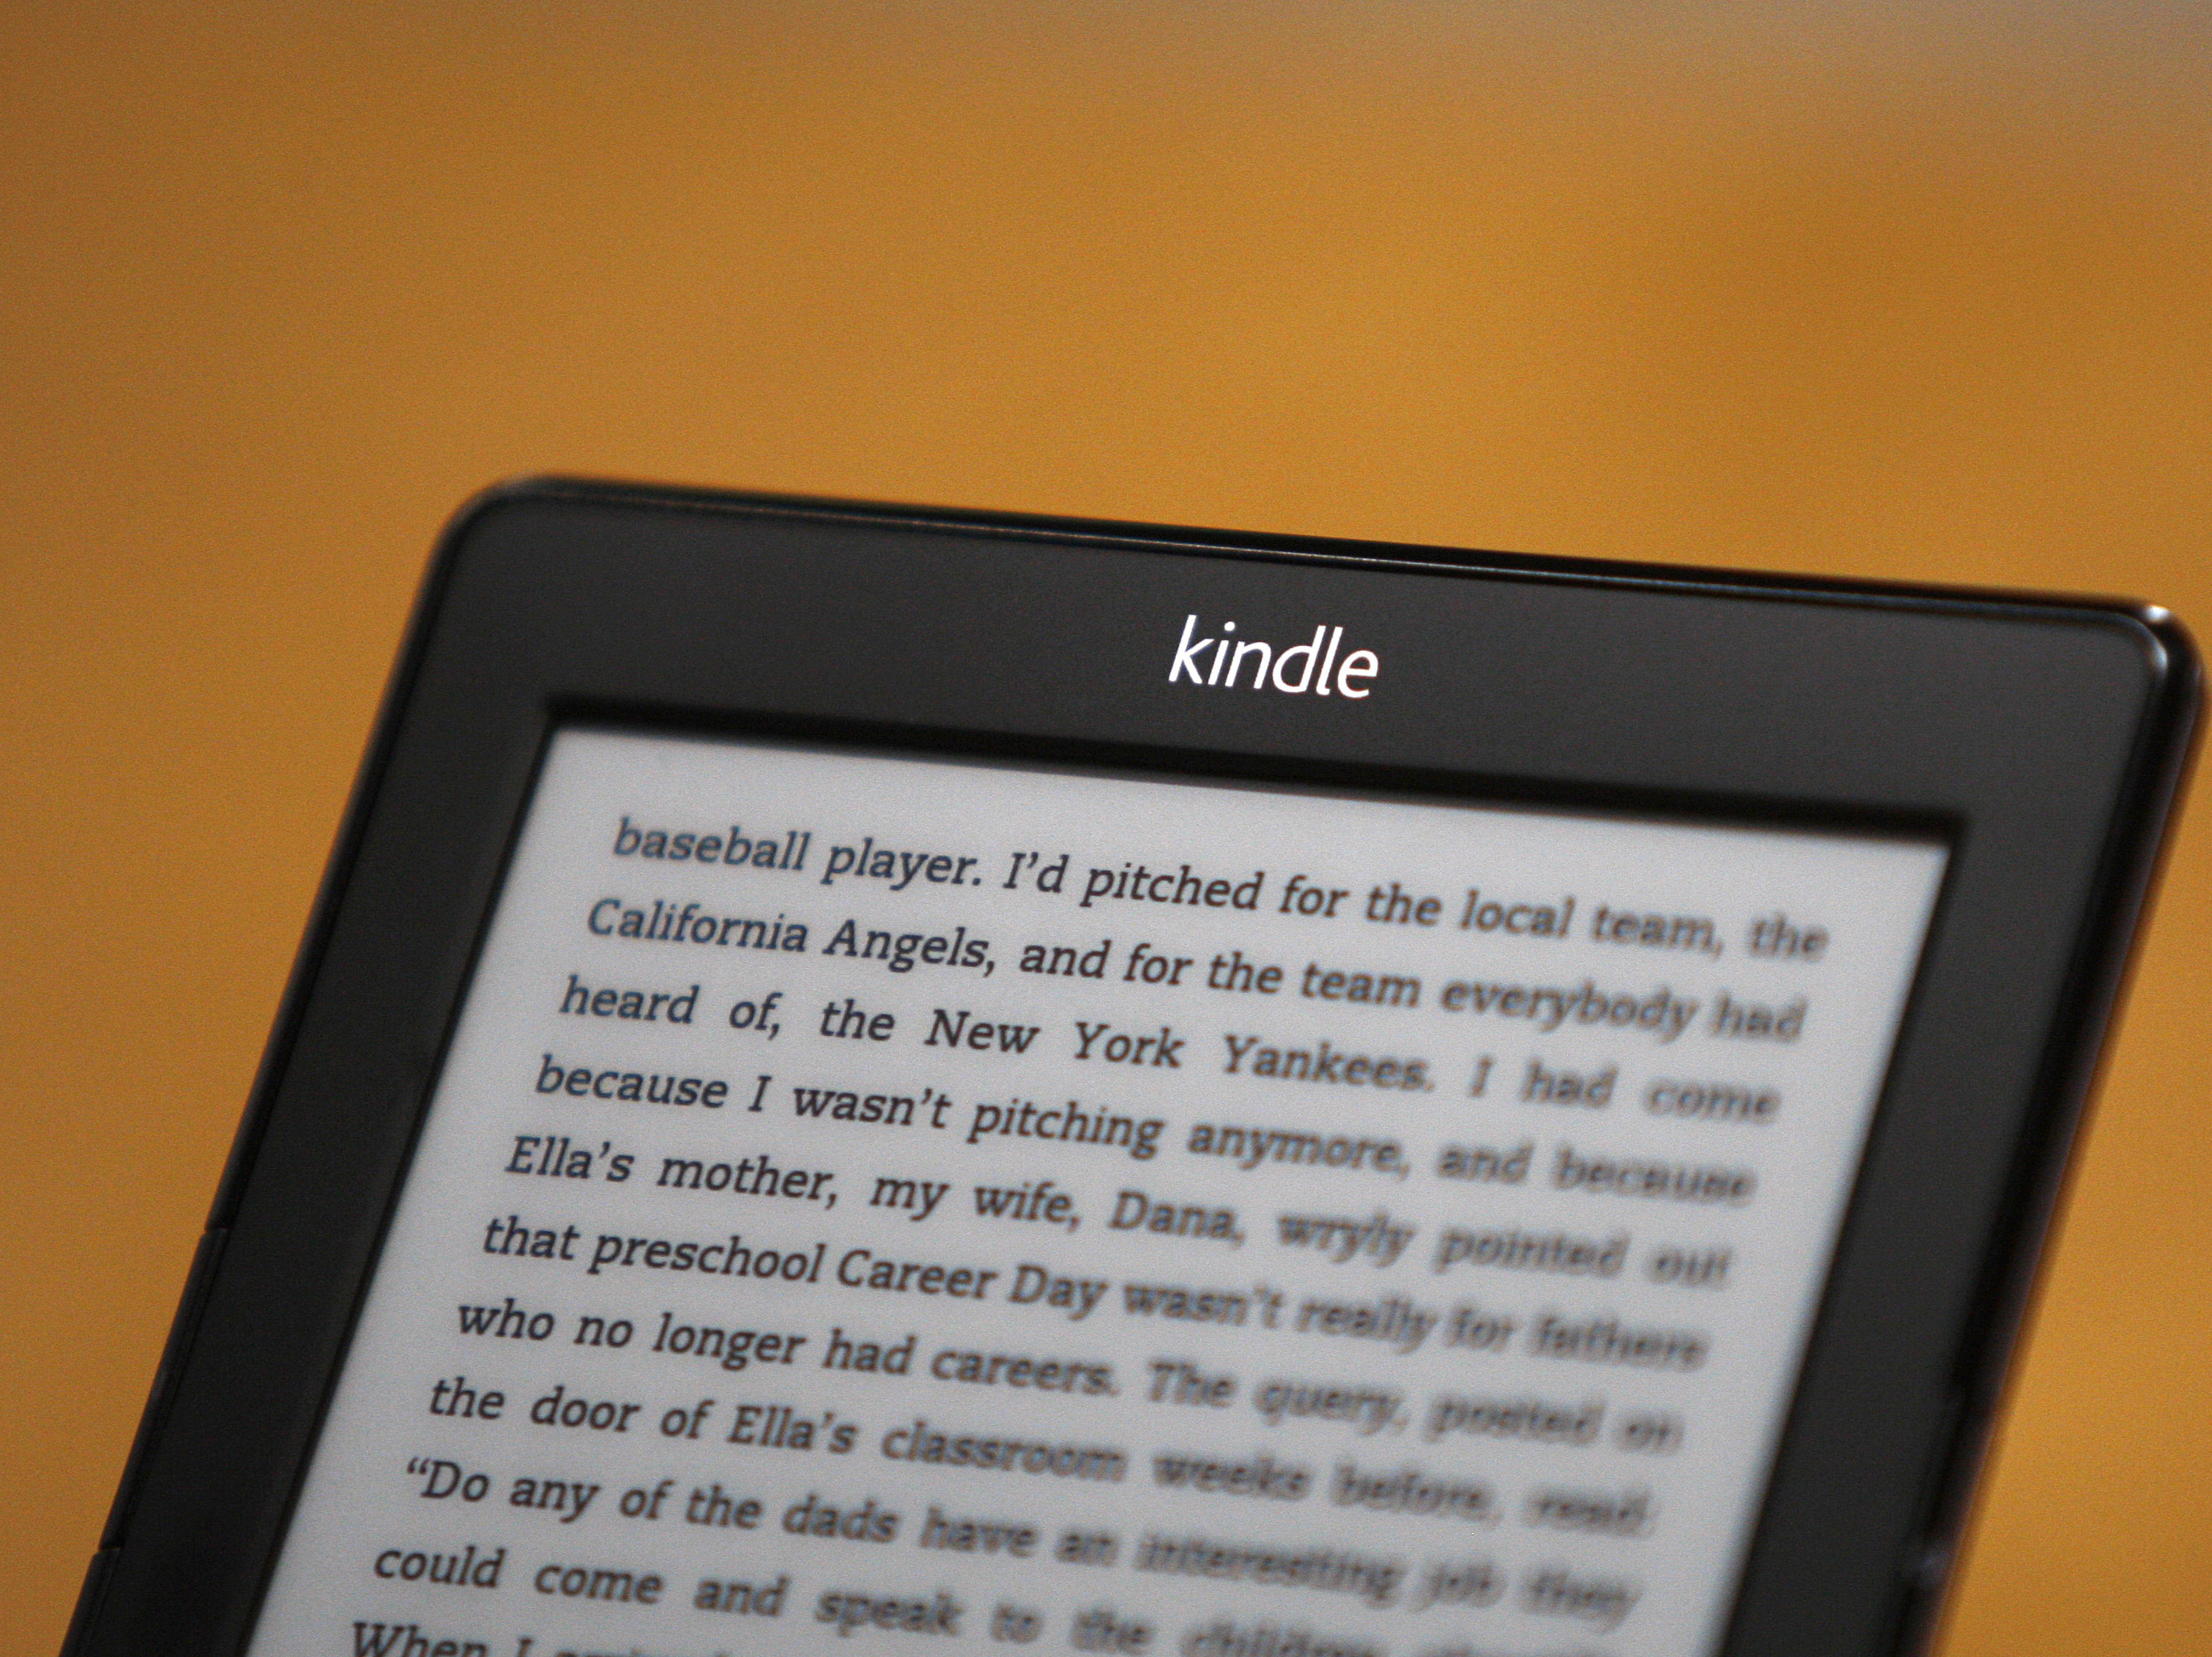 Antitrust Monitor Ordered For Apple Over E-Book Price Fixing